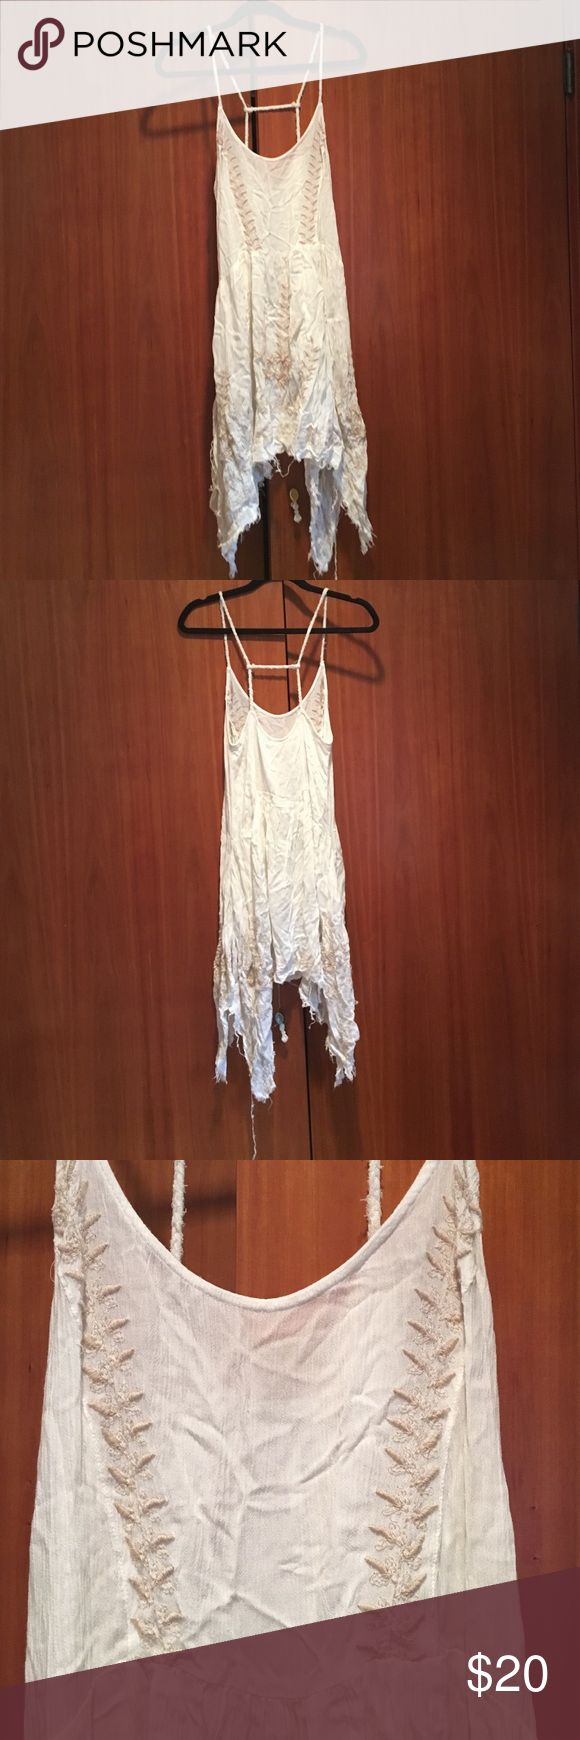 Size 0 white dress in the ocean